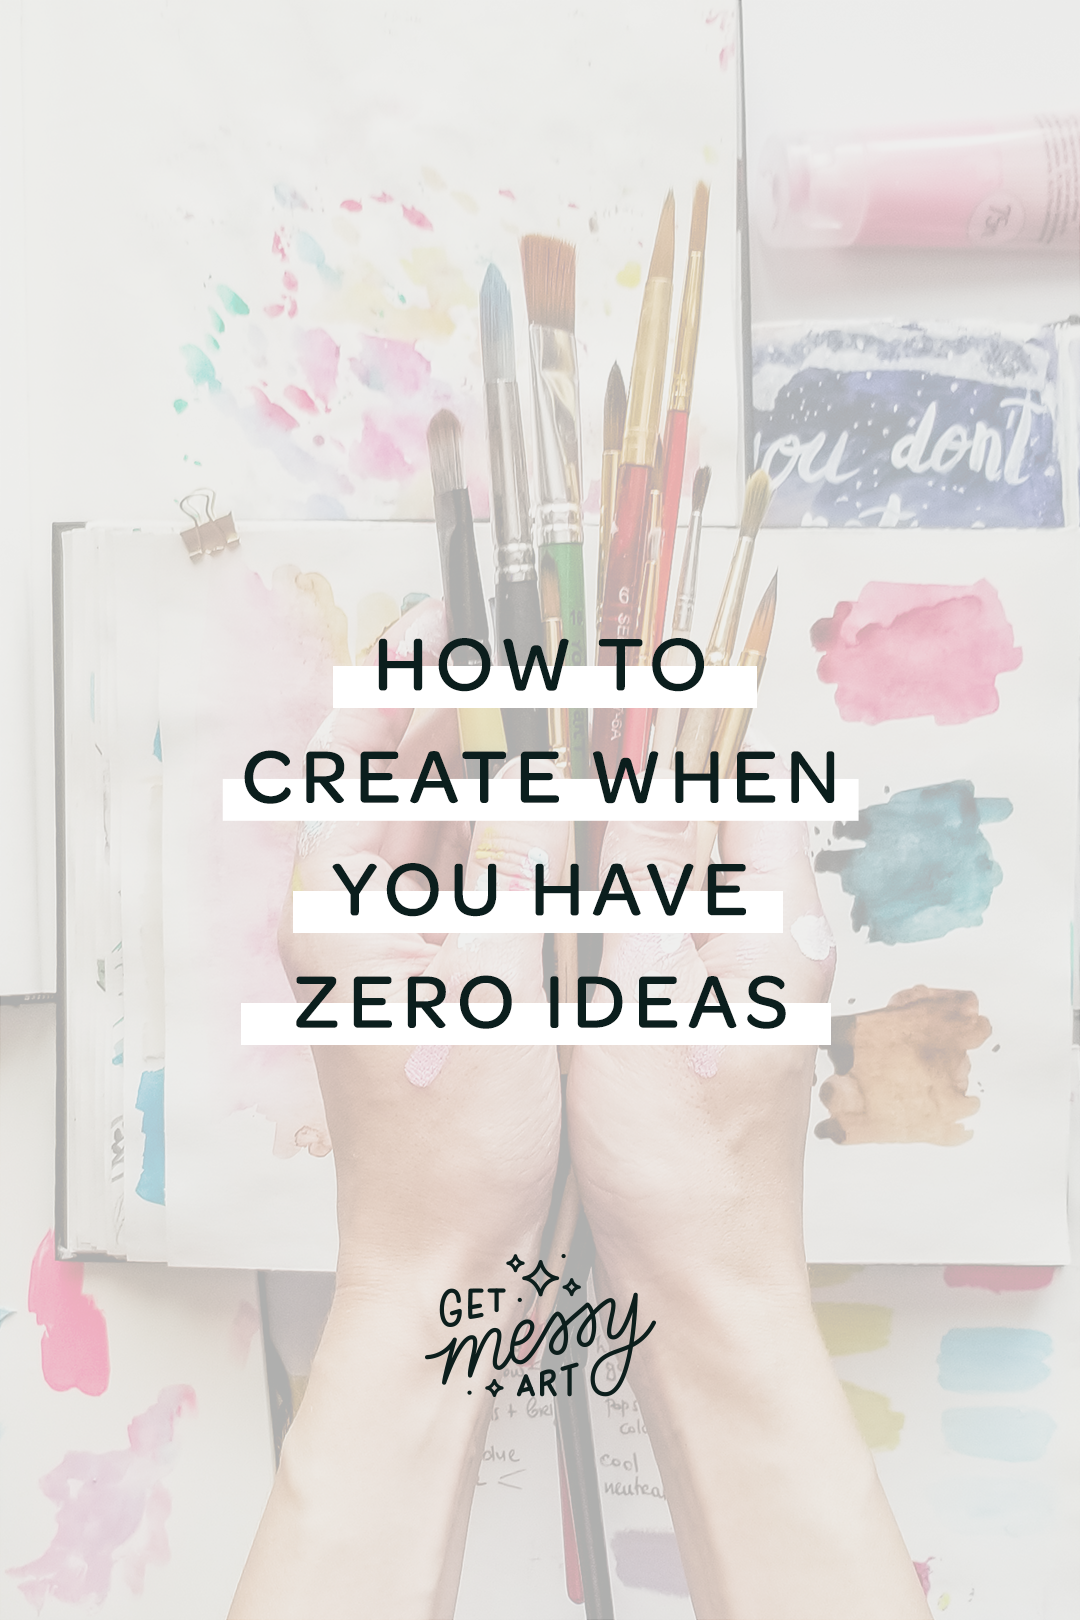 How to create when you have zero ideas